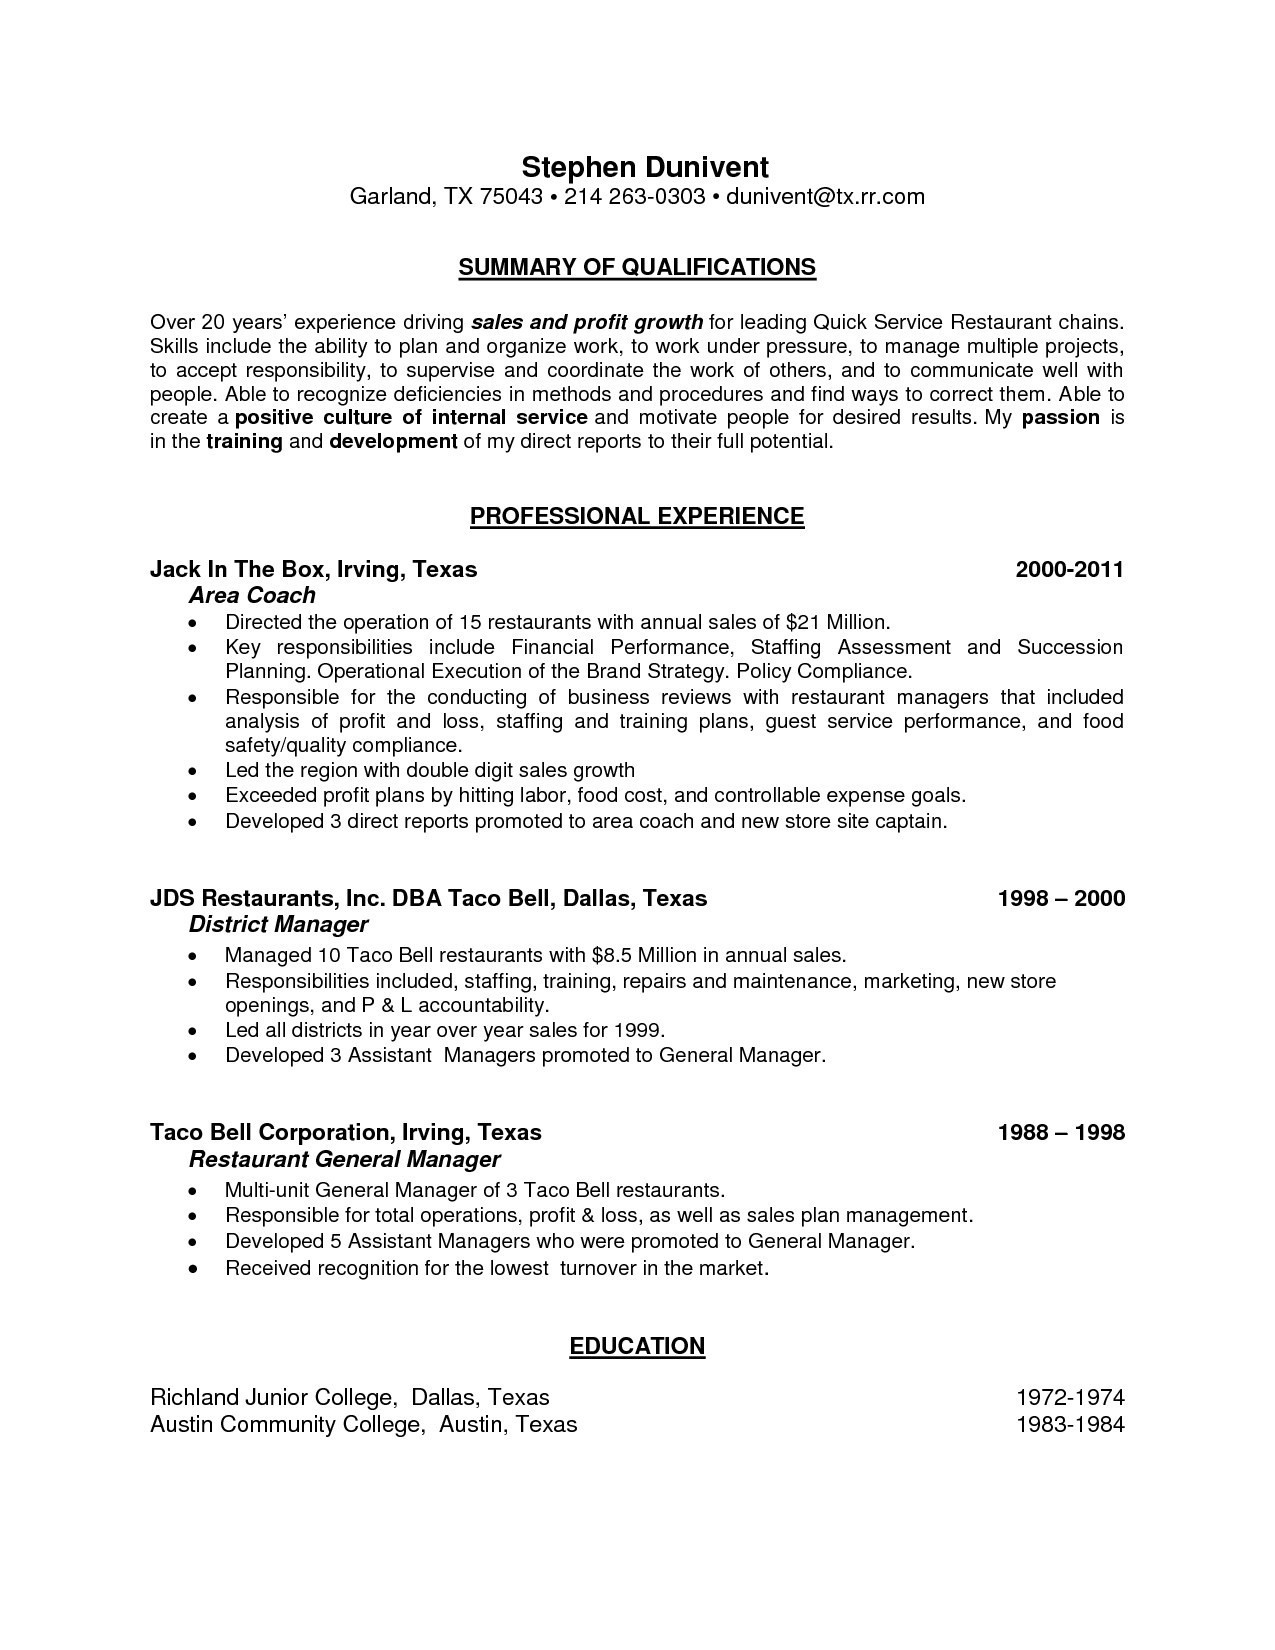 Sales Resume Summary - Skills Summary Resume Sample Fresh Resume Samples Skills Fresh